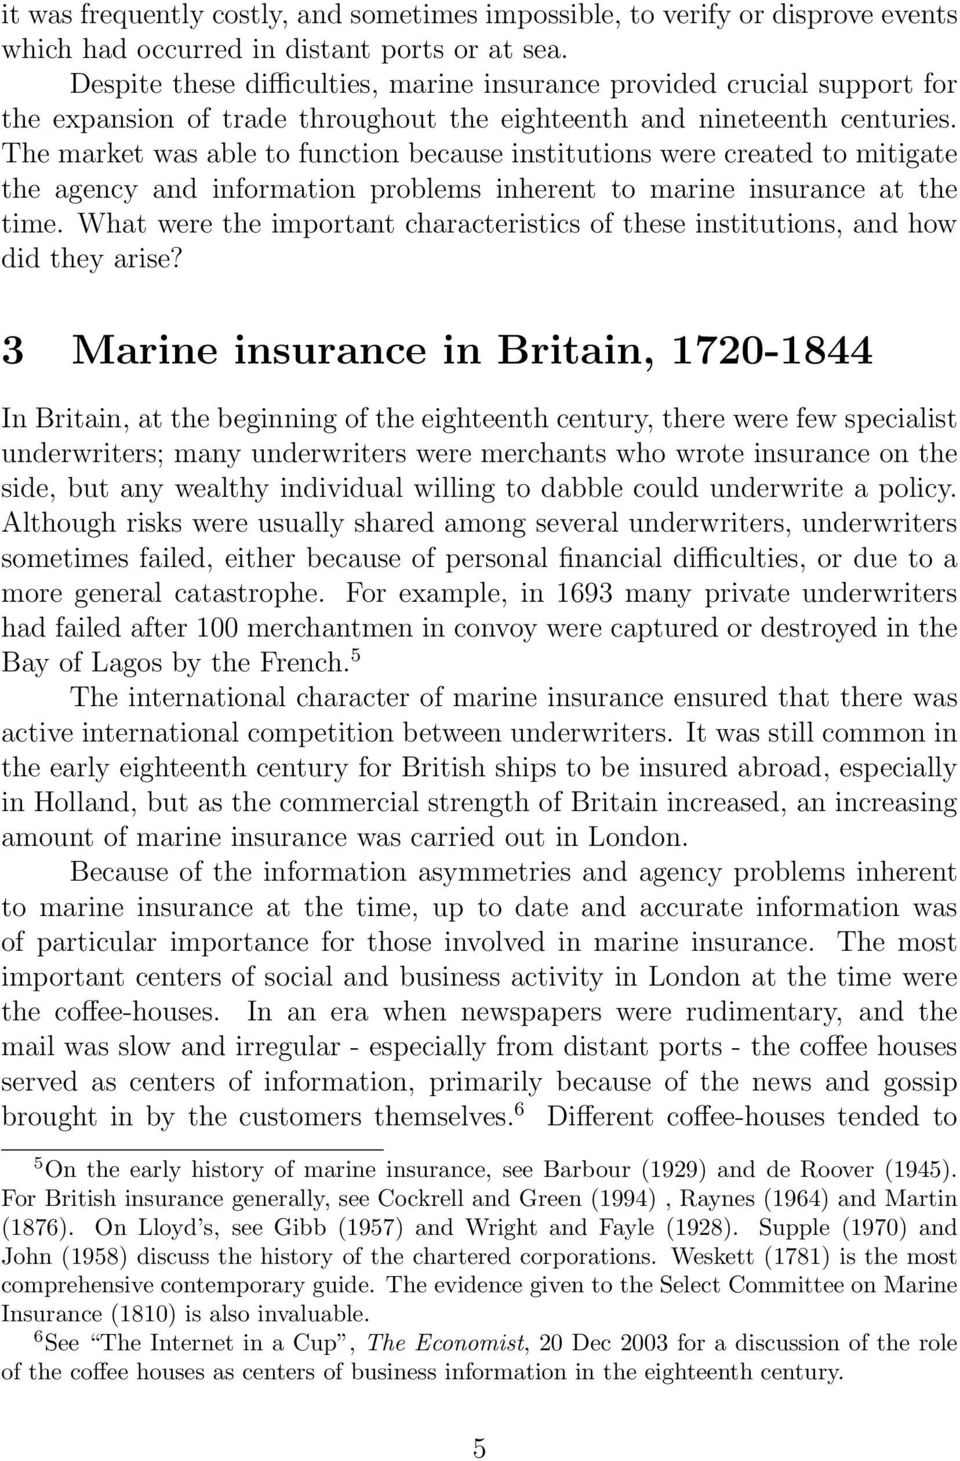 The market was able to function because institutions were created to mitigate the agency and information problems inherent to marine insurance at the time.